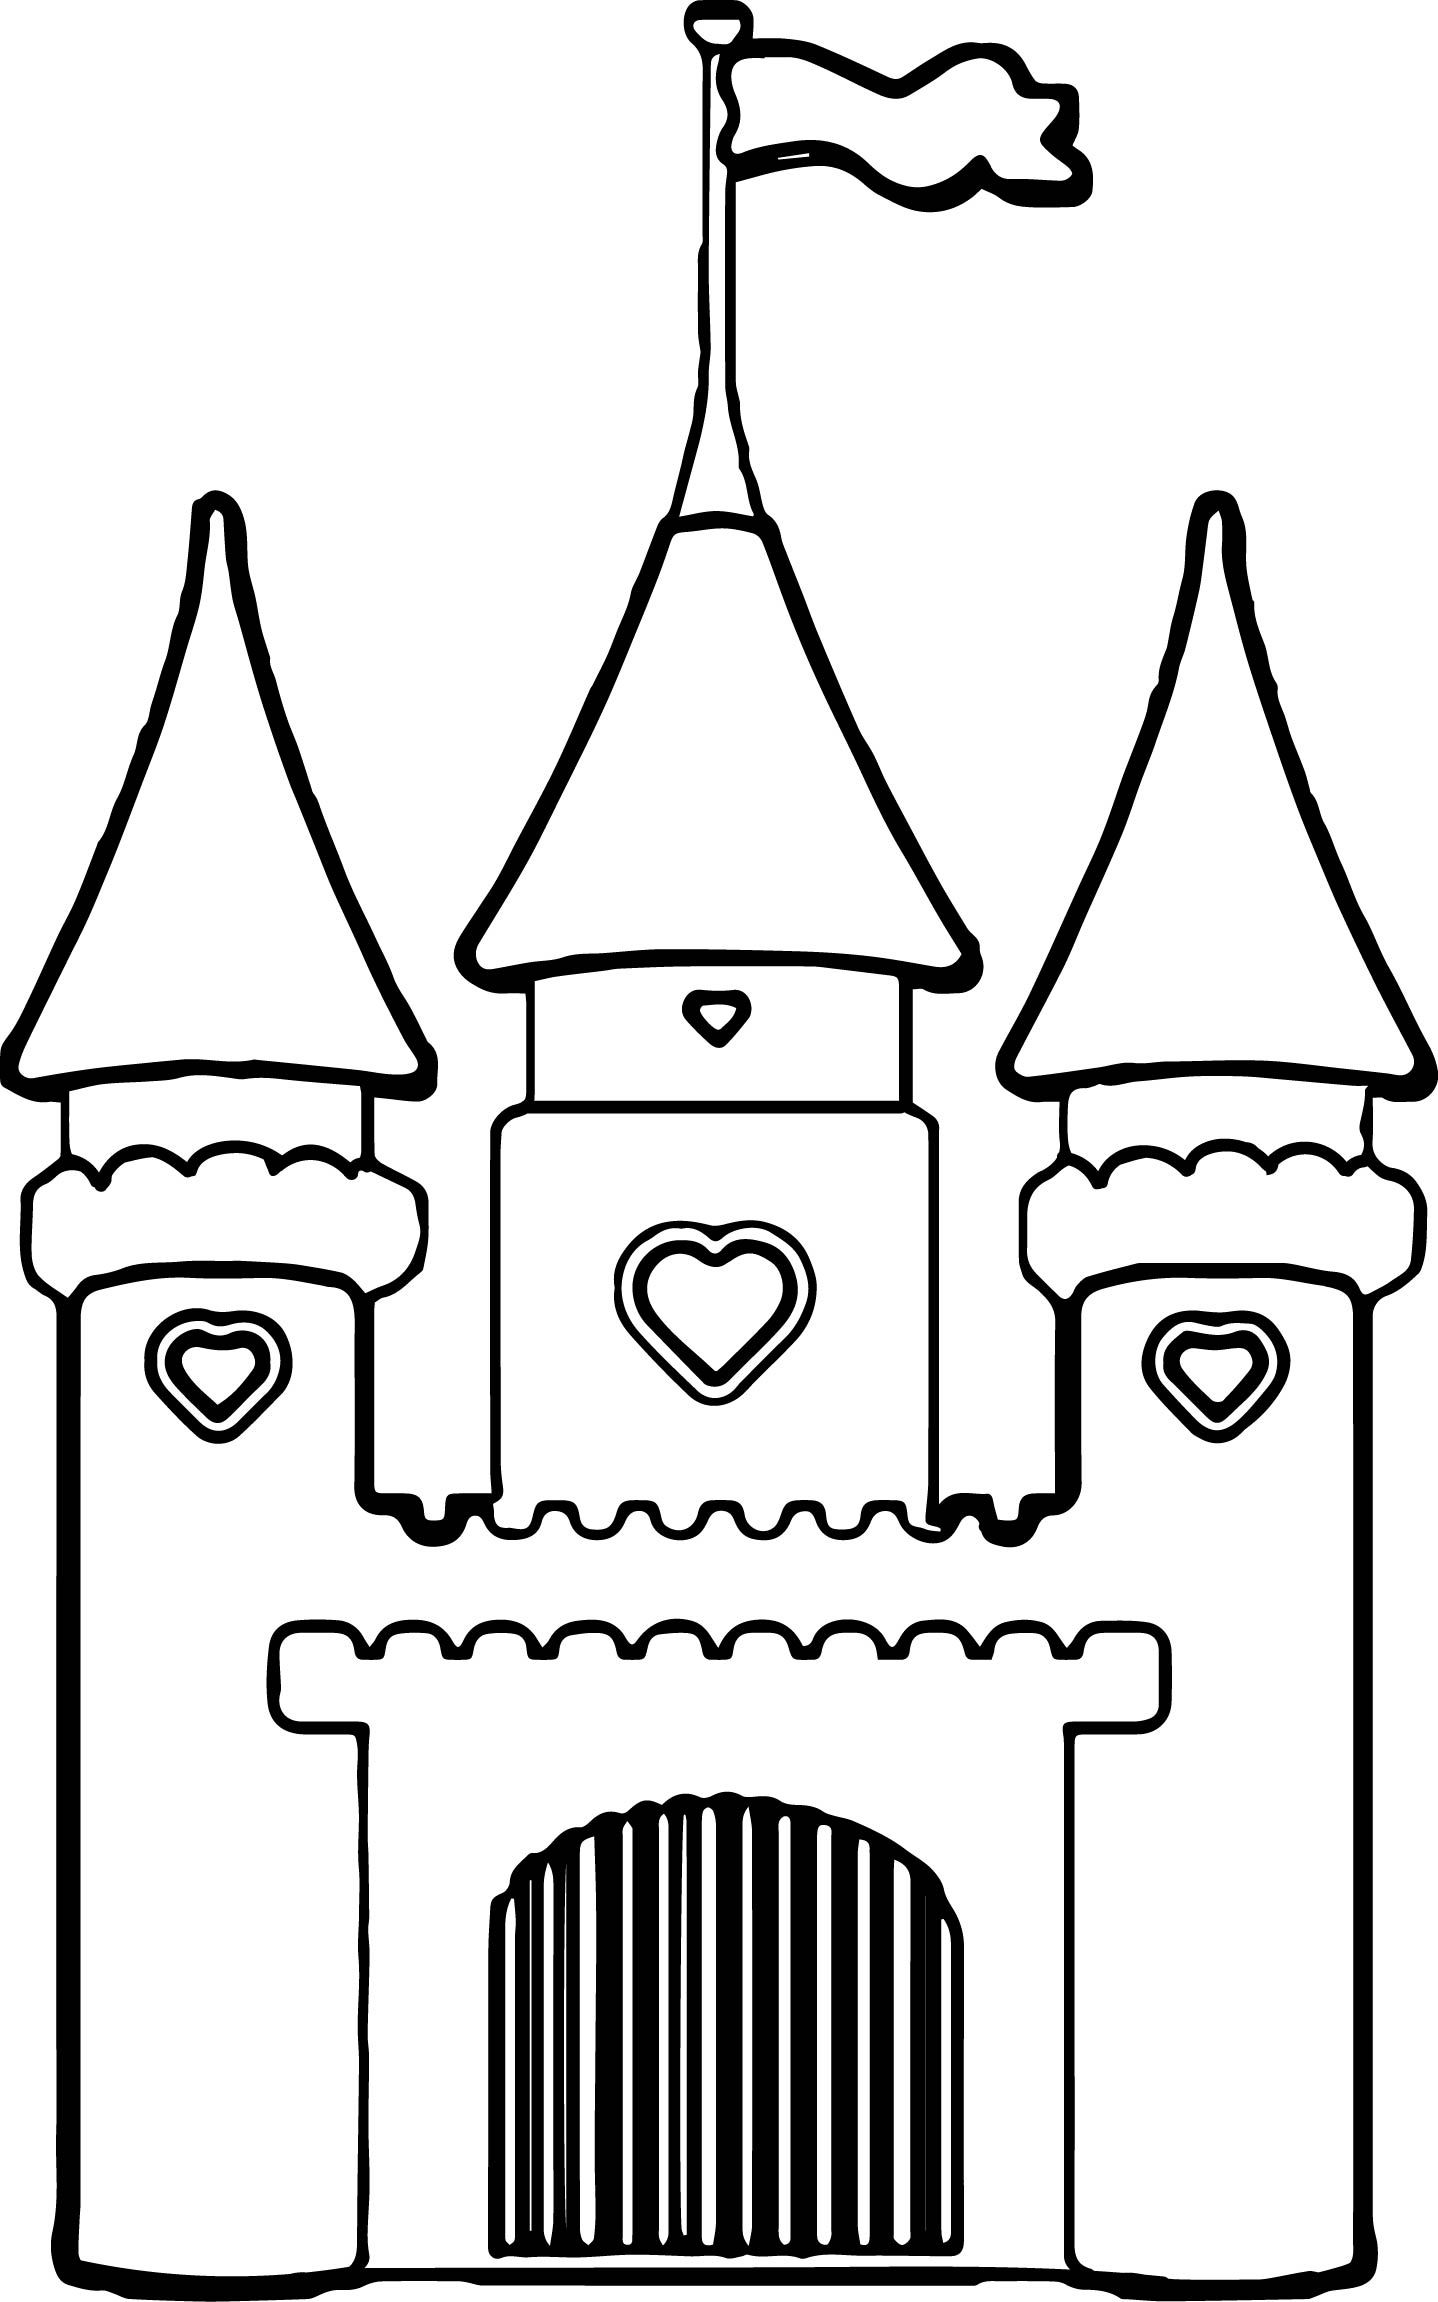 Girls Coloring Pages Free Castle Coloring Page Princess Coloring Pages Coloring Pages